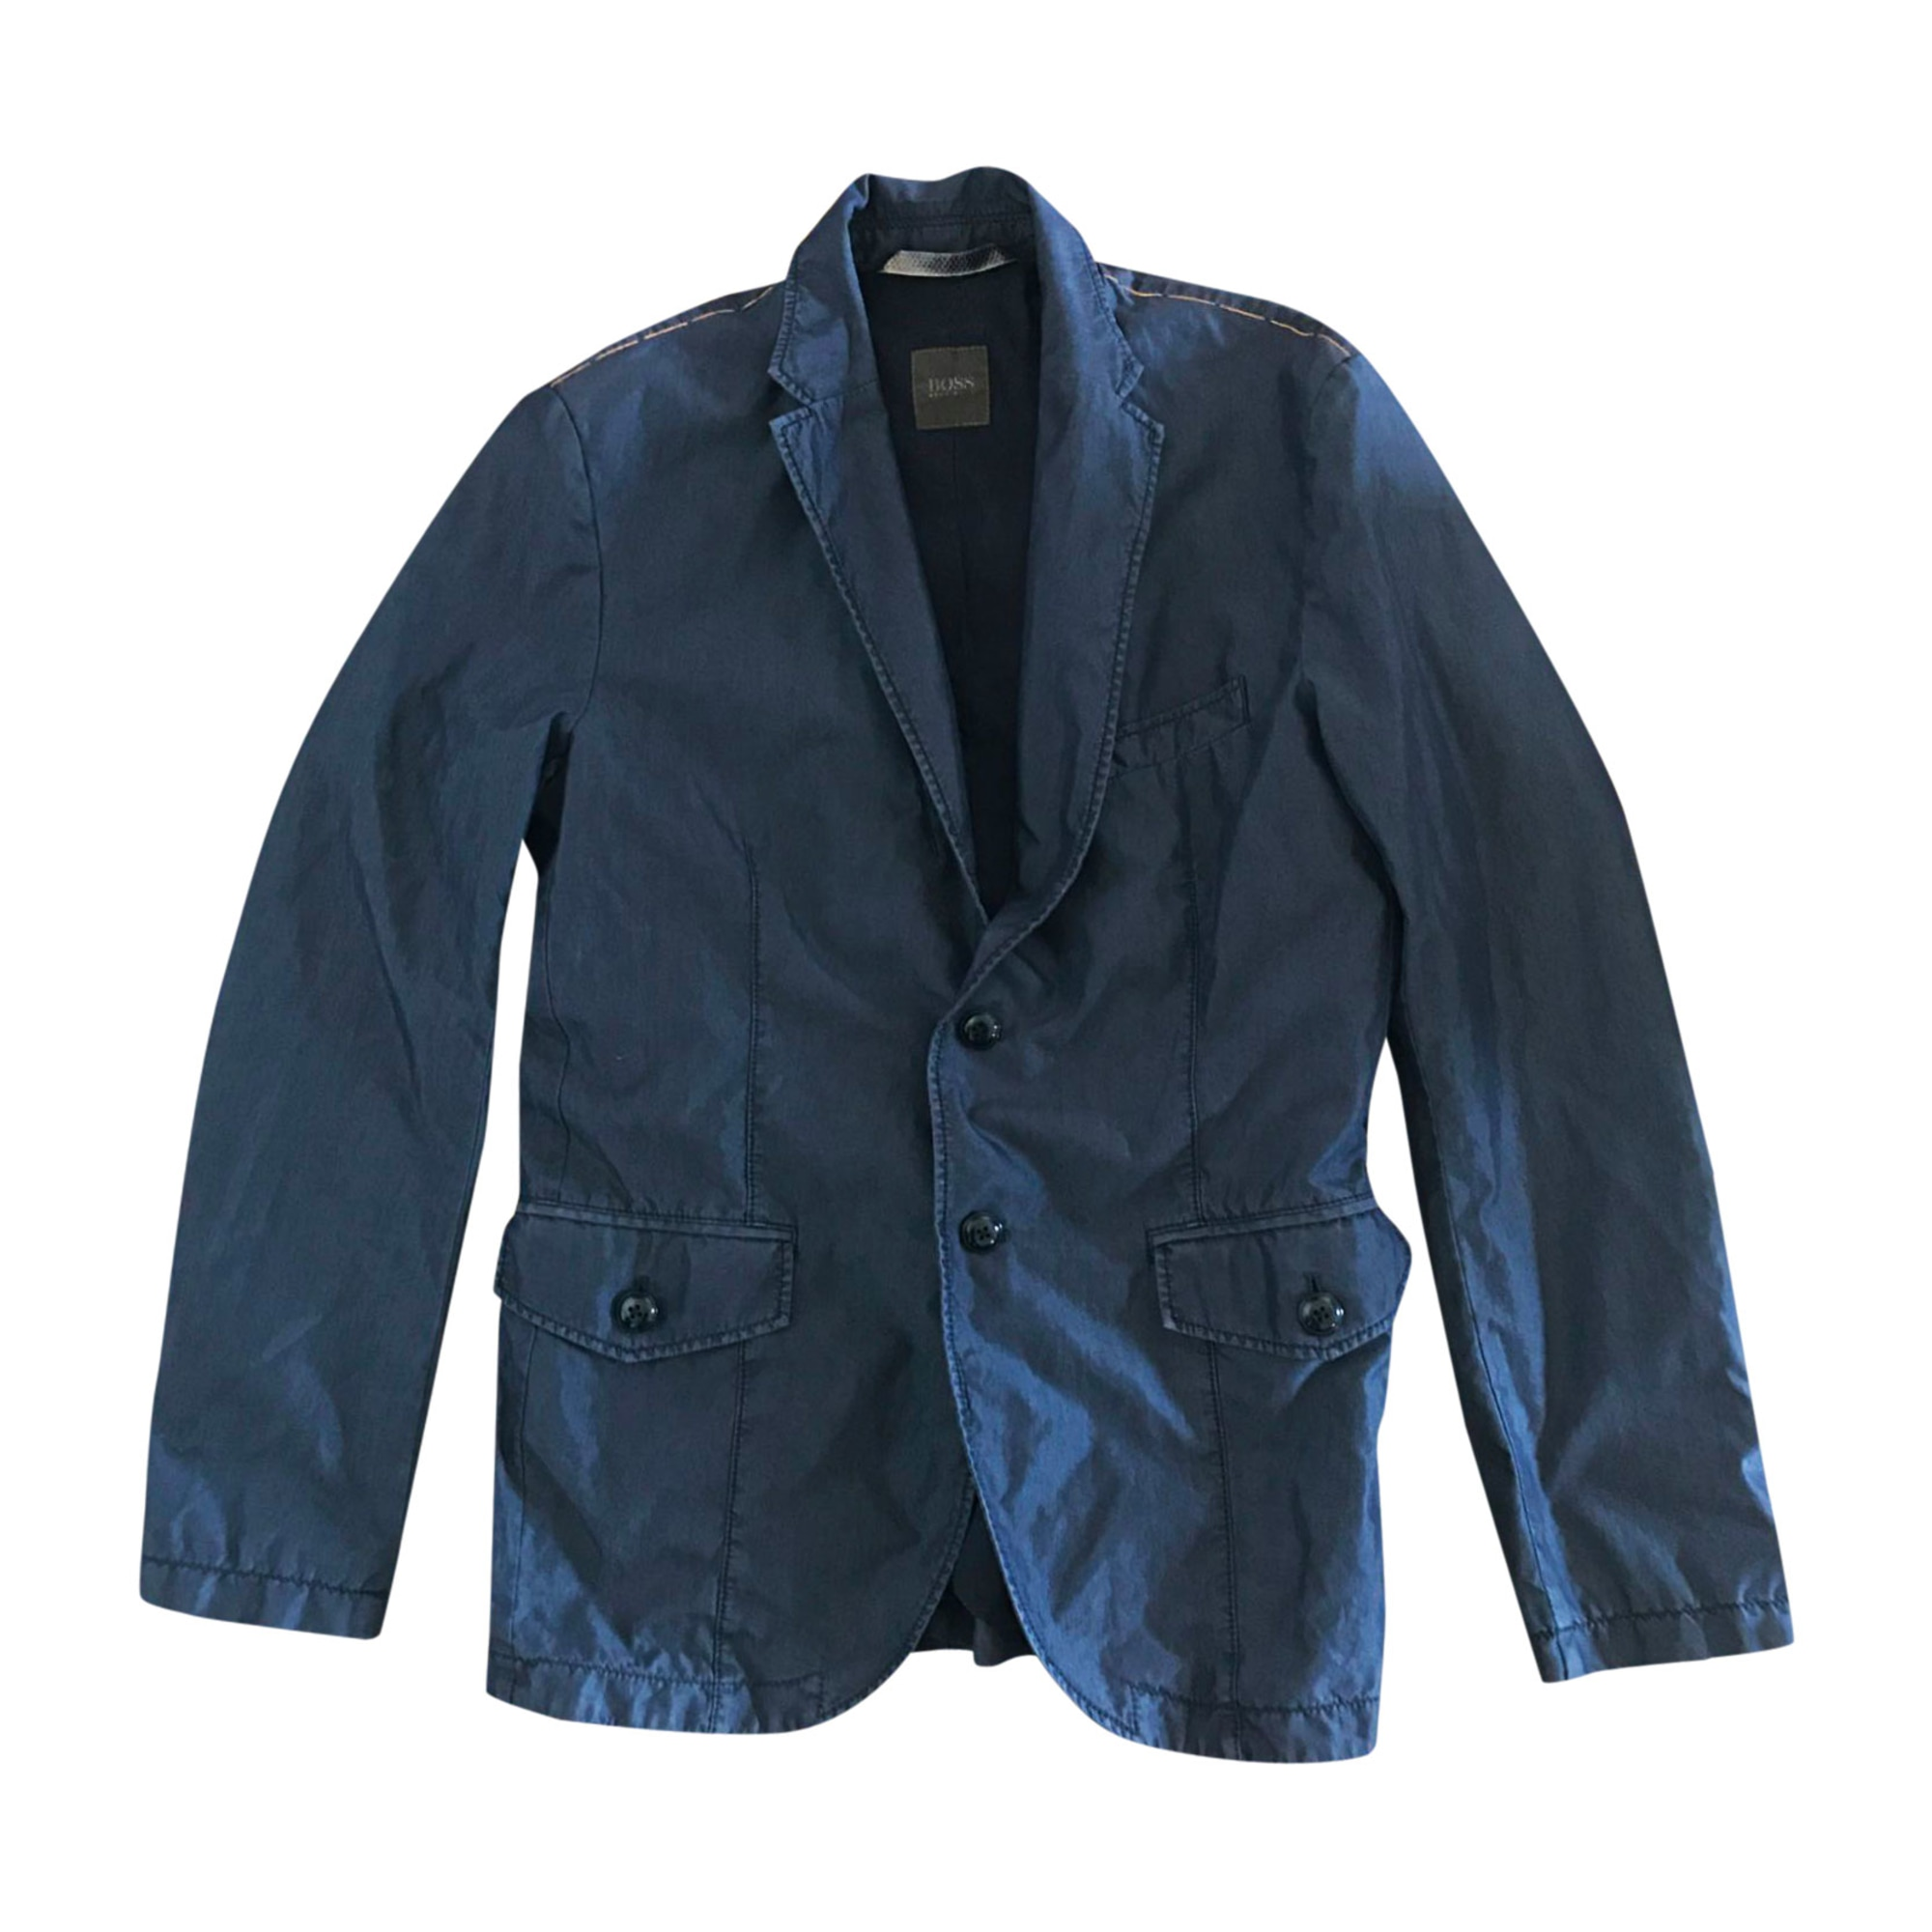 Giacca HUGO BOSS Blu, blu navy, turchese